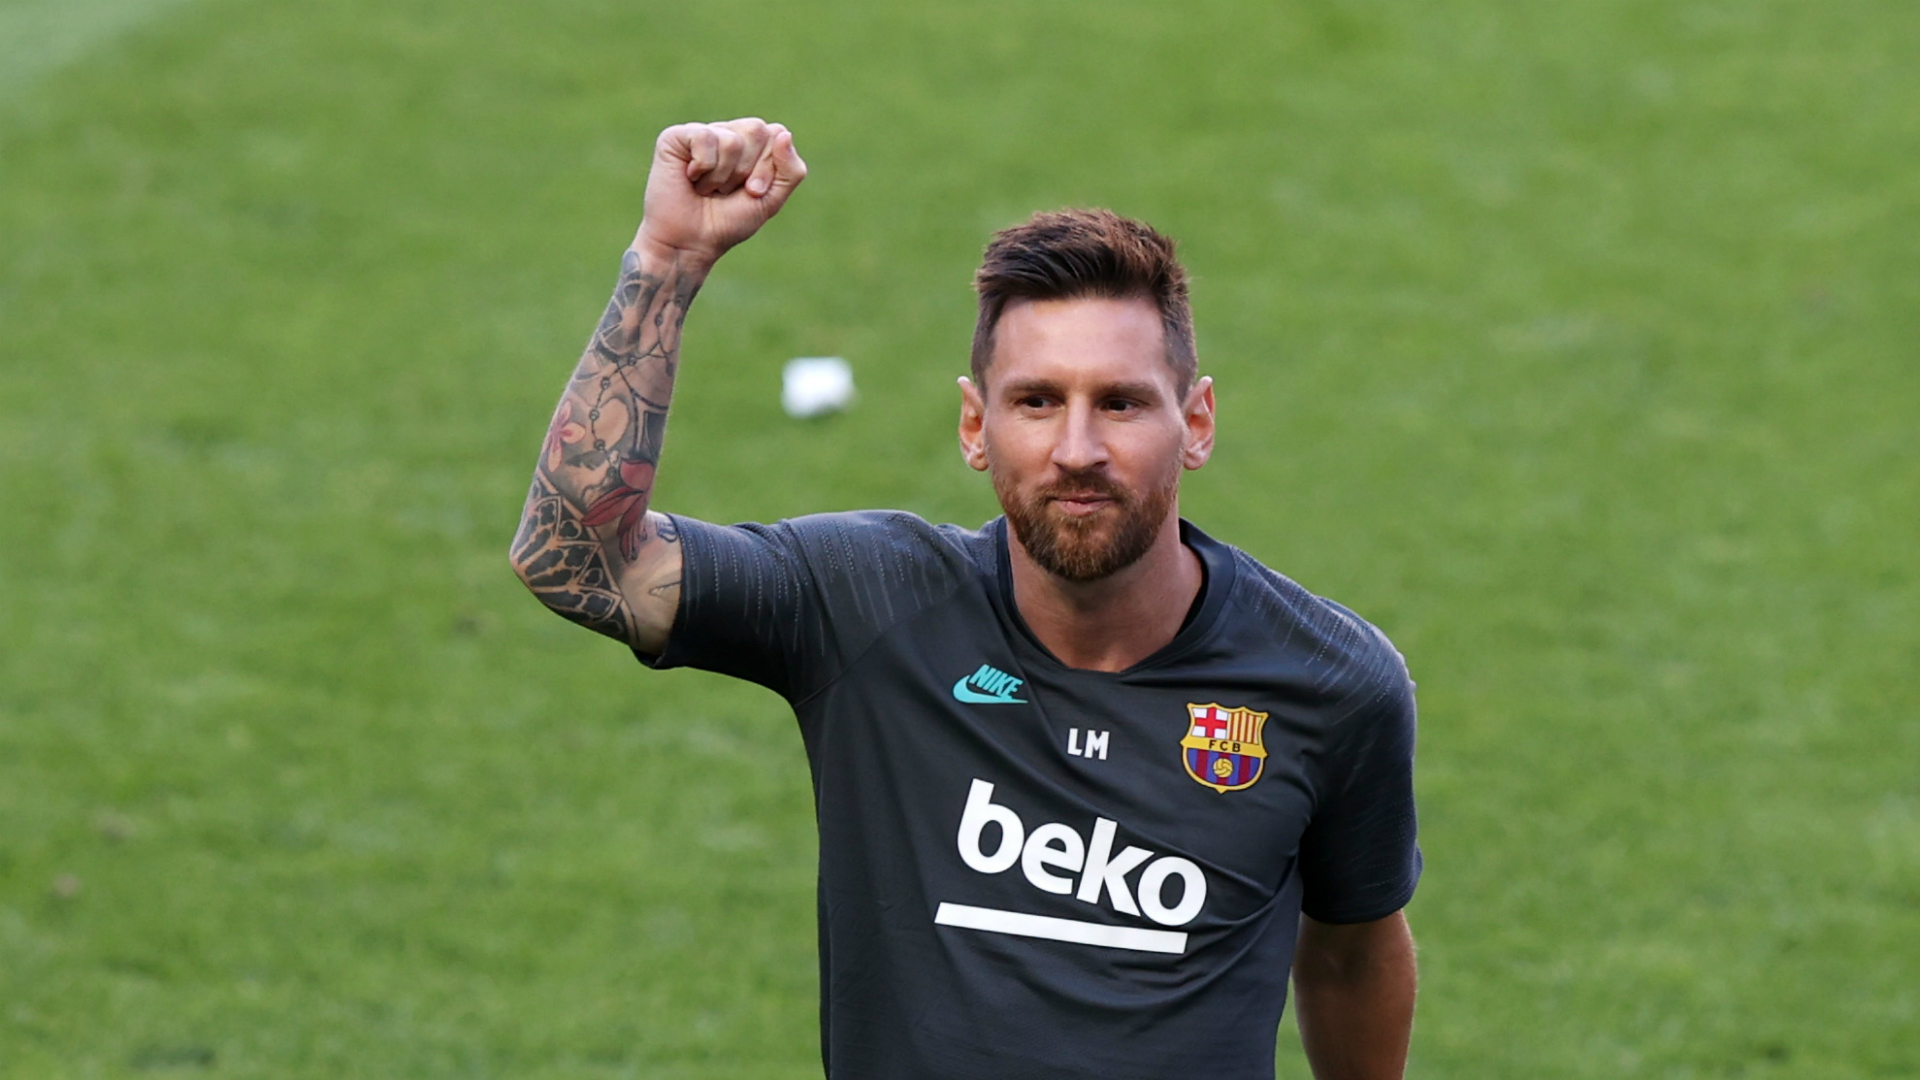 Bayern are great but Messi gives Barcelona the edge over anyone - Mascherano